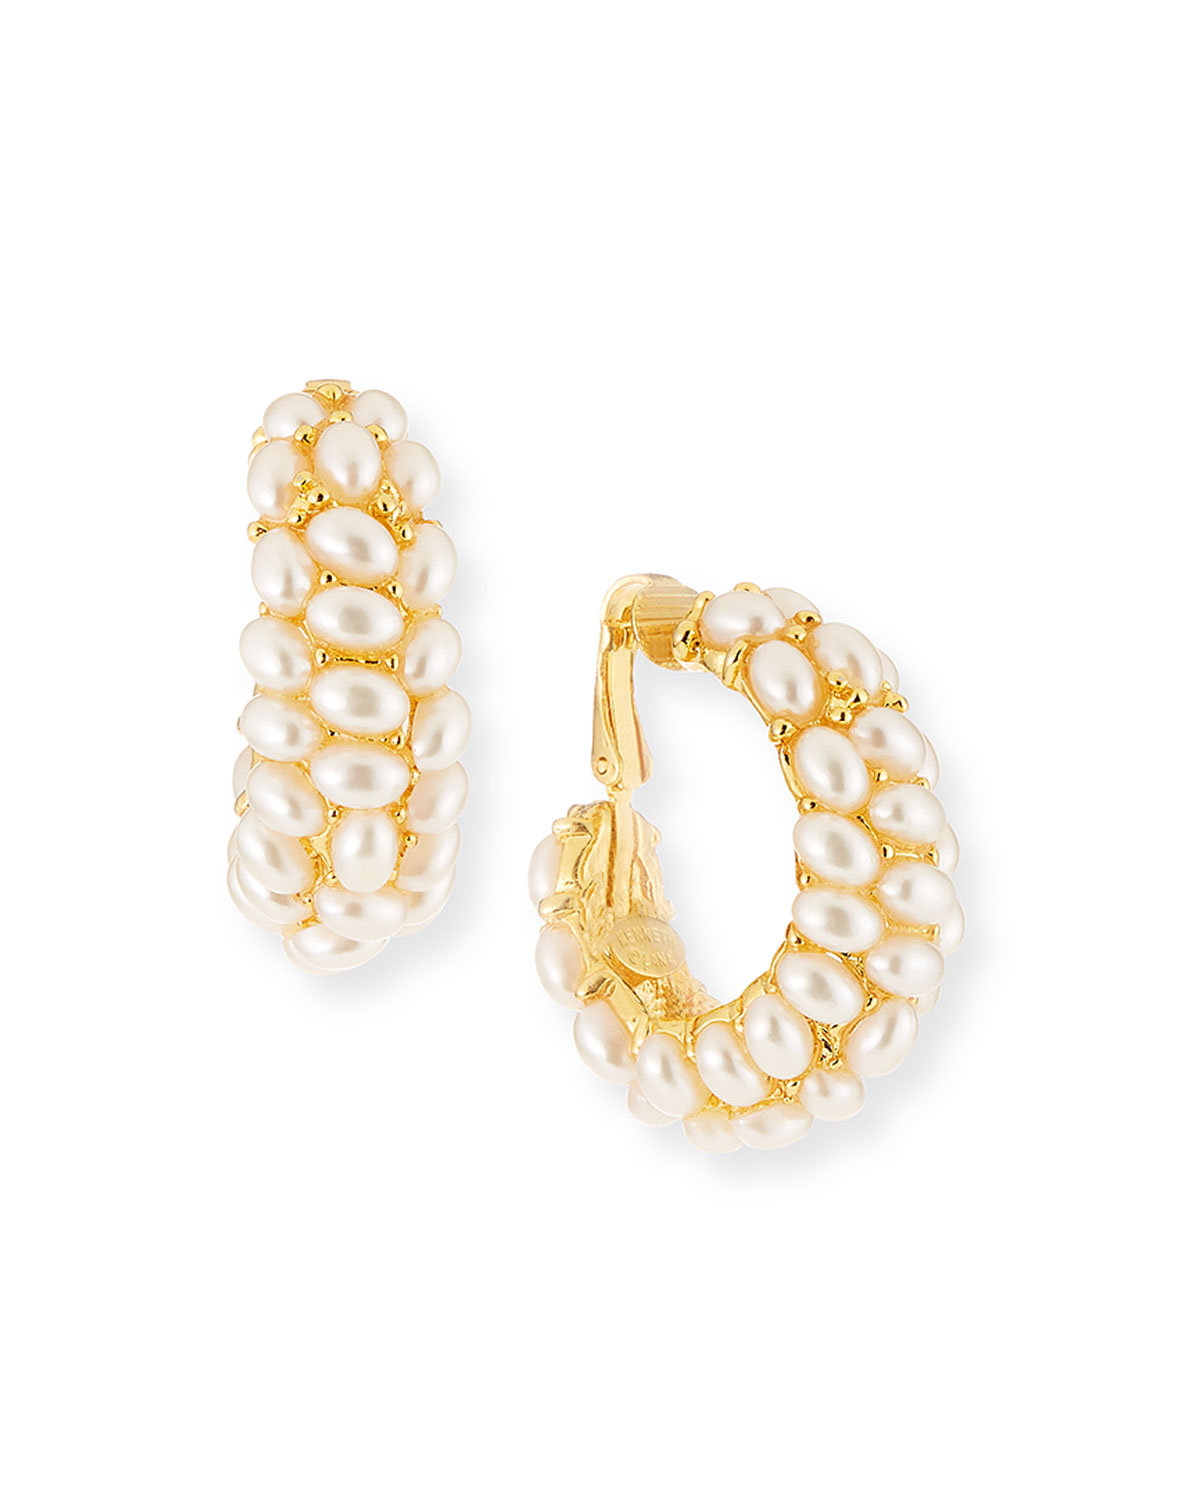 Kenneth Jay Lane Cabochon C-Hoop Clip Earrings, Pearly White